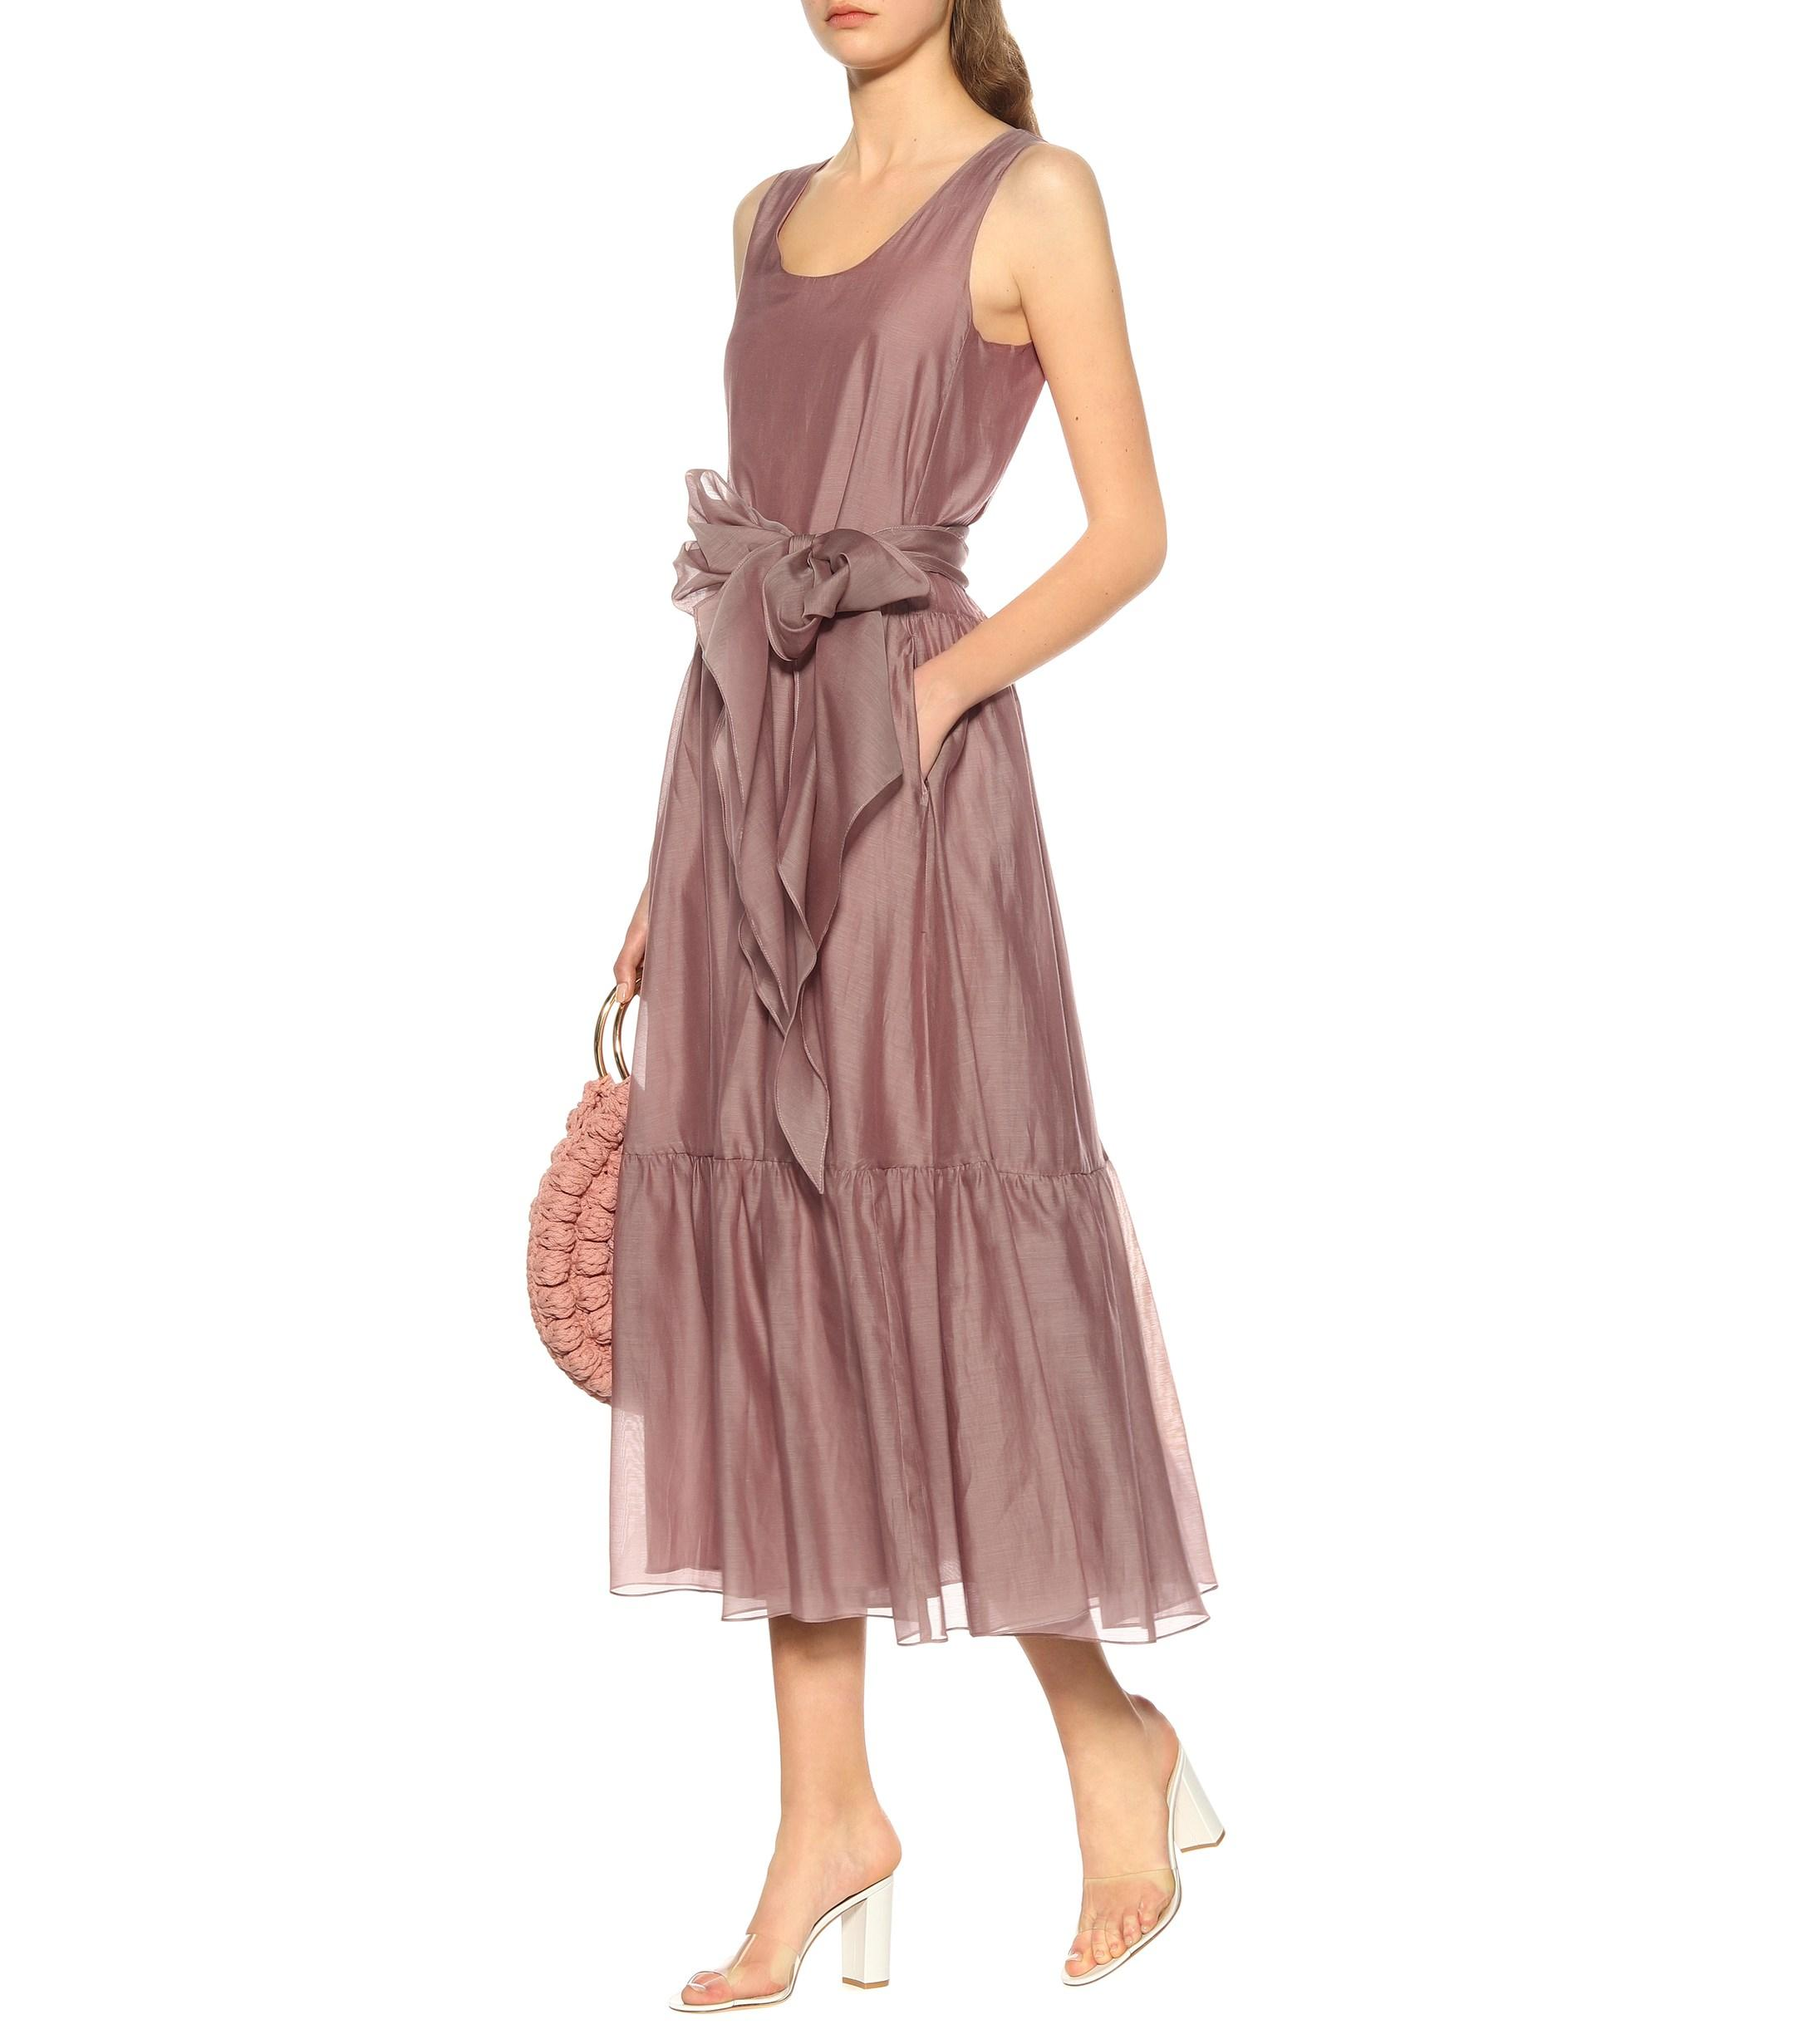 acf1933a82 Lyst - Max Mara Manche Cotton And Silk Voile Dress in Pink